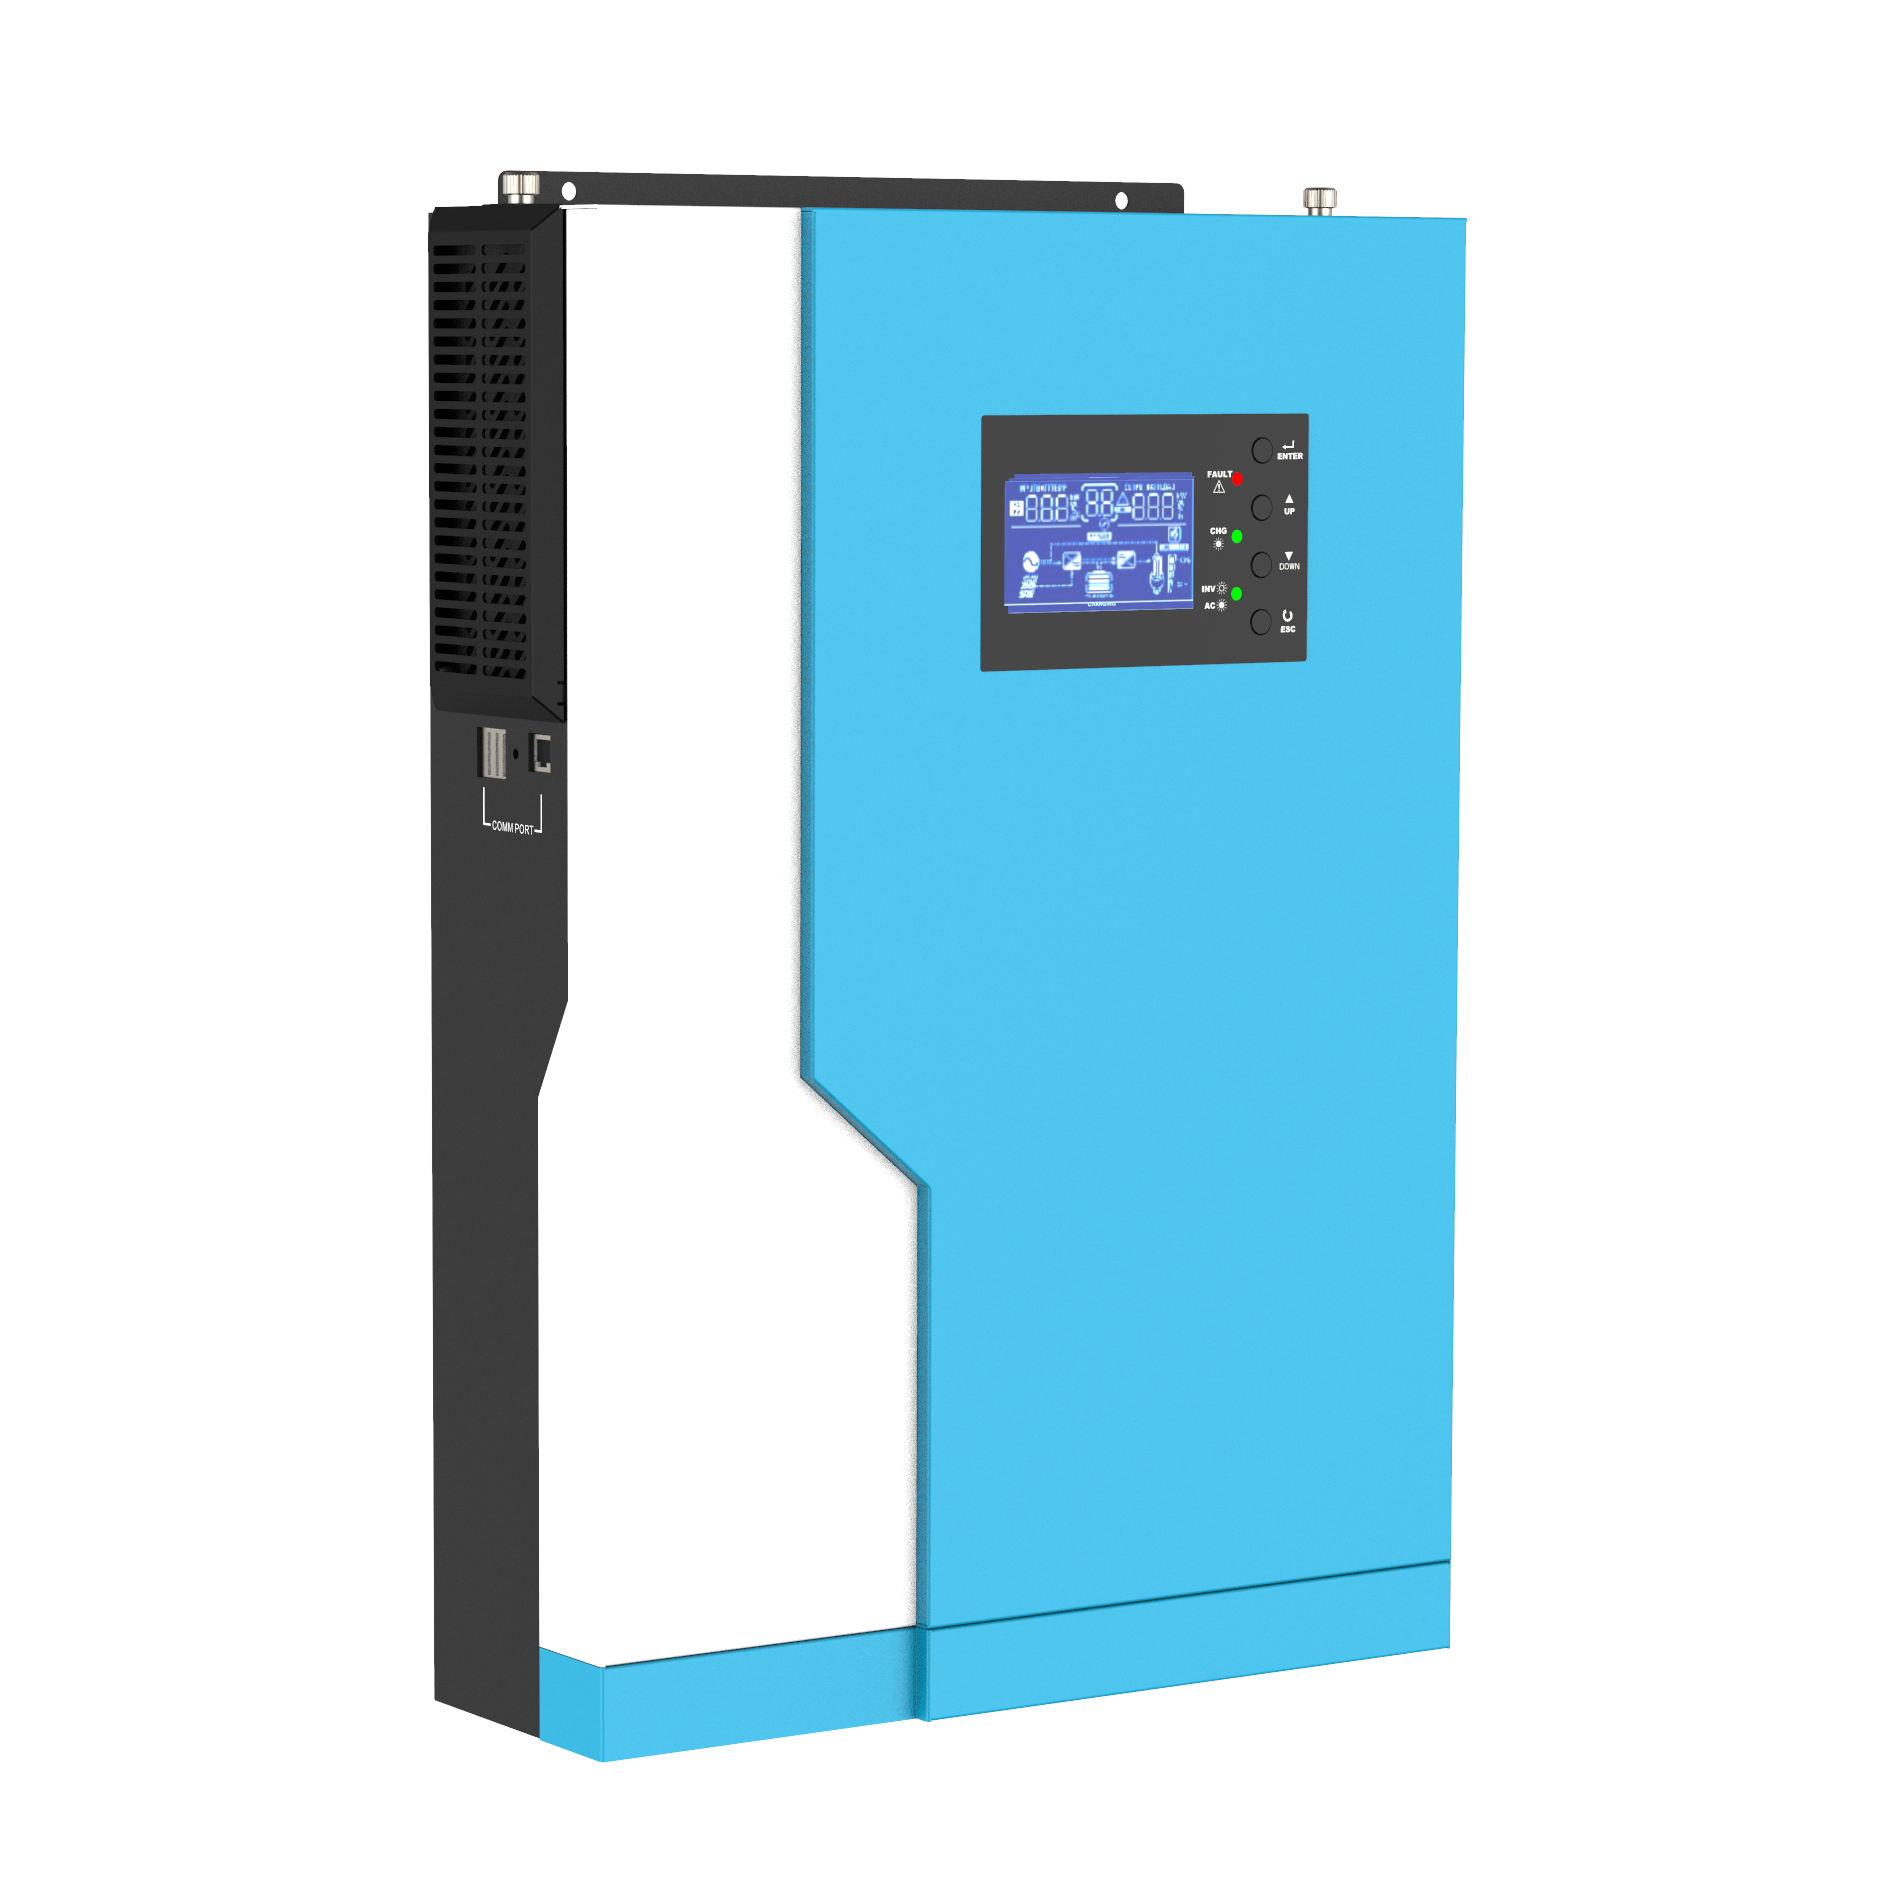 MPS-V Plus Series Hybrid Solar Pure Sine Wave Solar Inverter